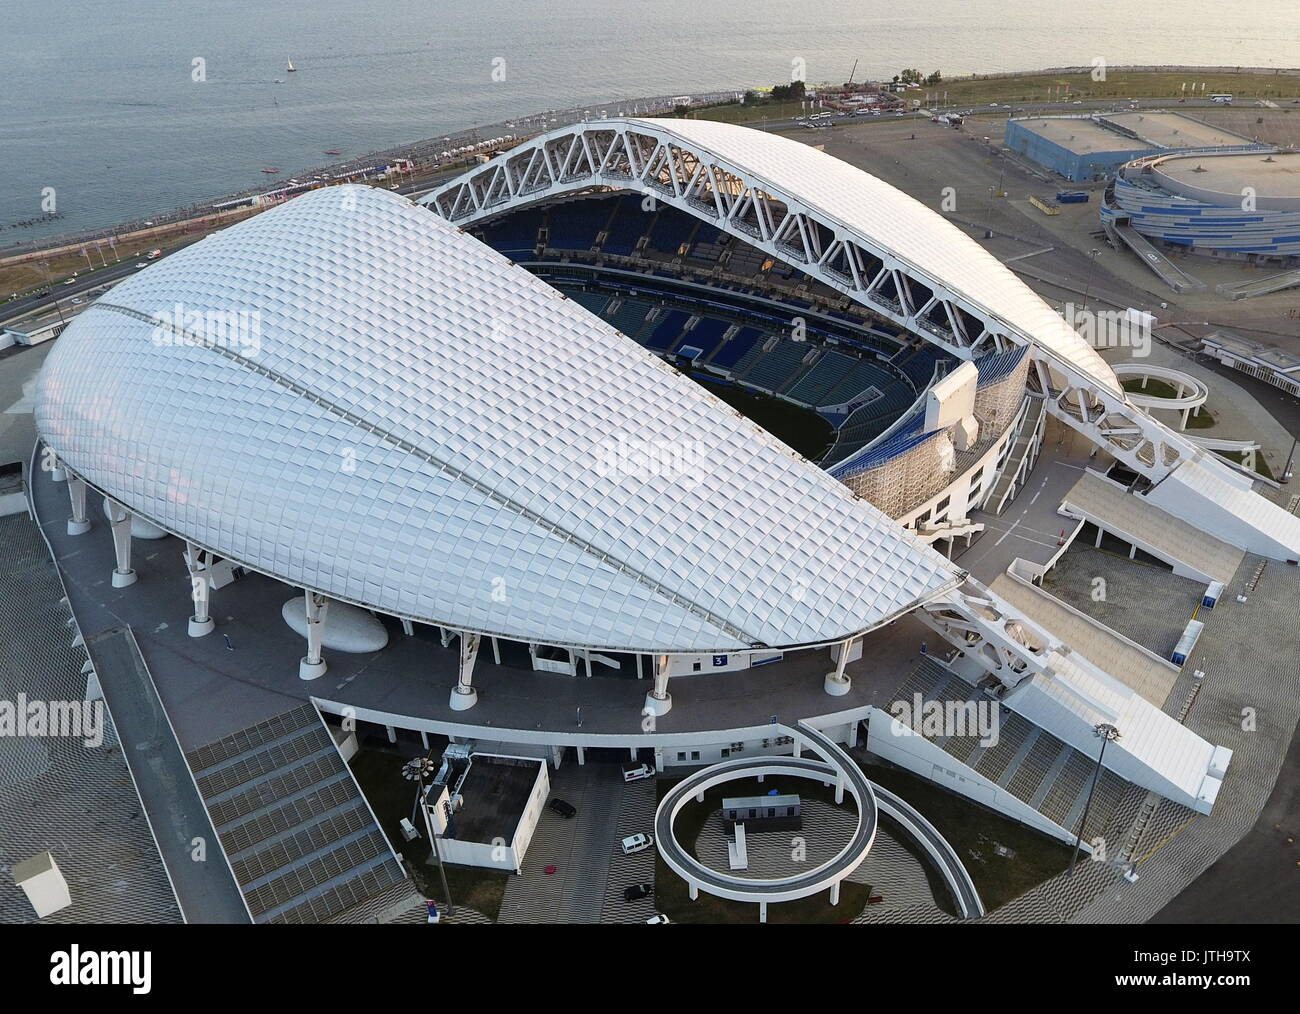 SOCHI, RUSSIA - AUGUST 8, 2017: An aerial view of the Fisht Stadium in the Sochi Olympic Park. The stadium to host - Stock Image